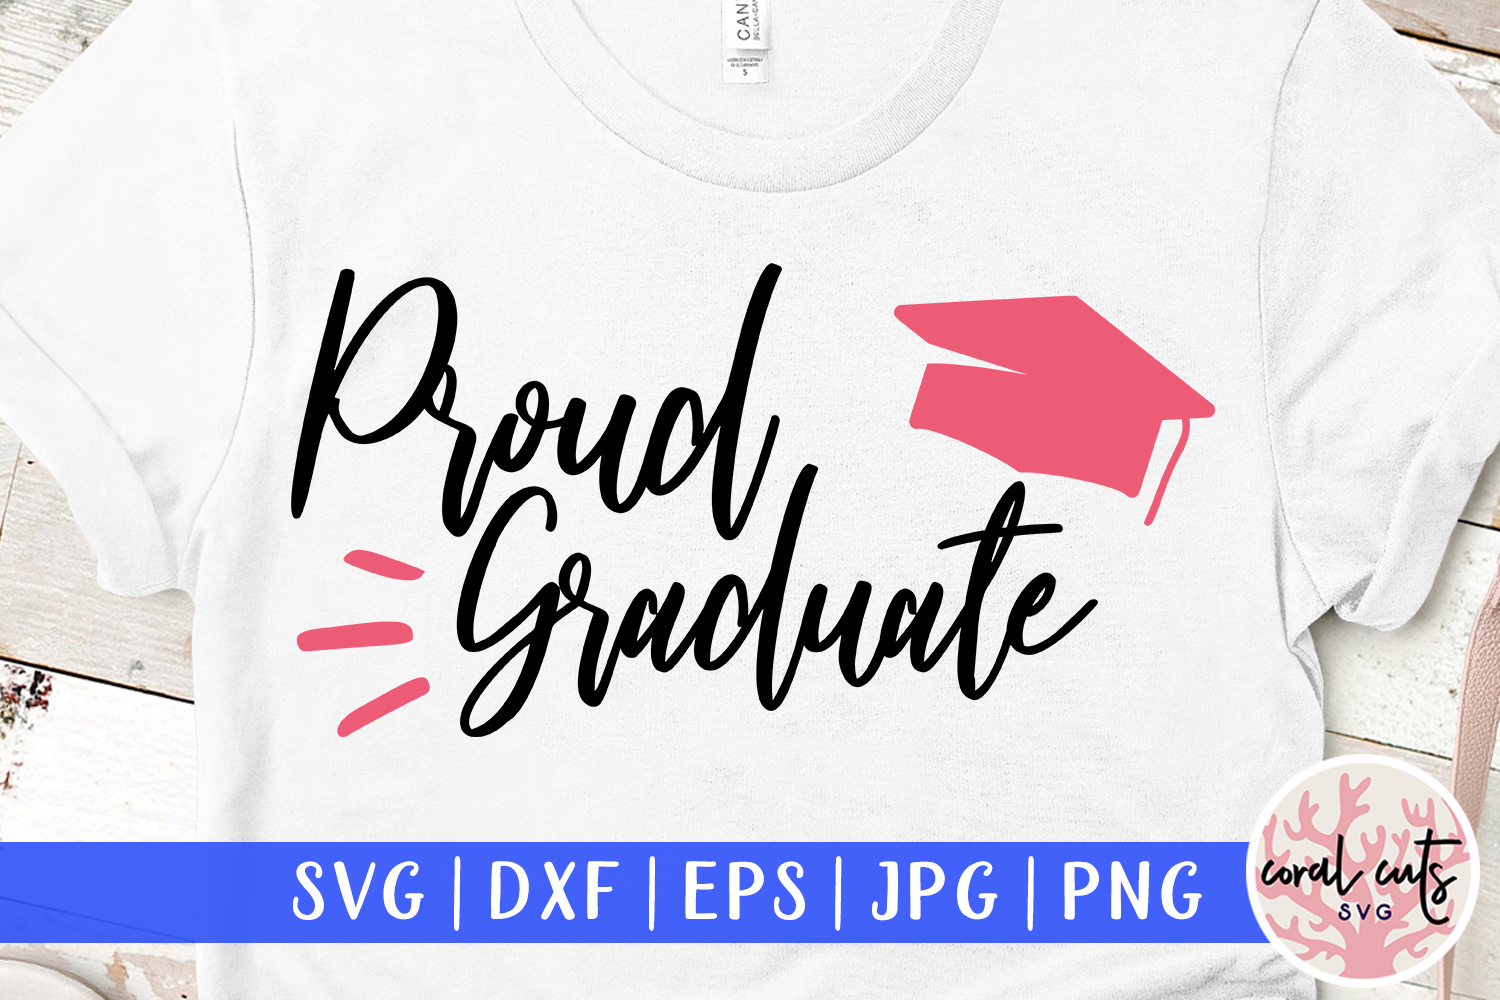 Download Free Proud Graduate Graphic By Coralcutssvg Creative Fabrica for Cricut Explore, Silhouette and other cutting machines.